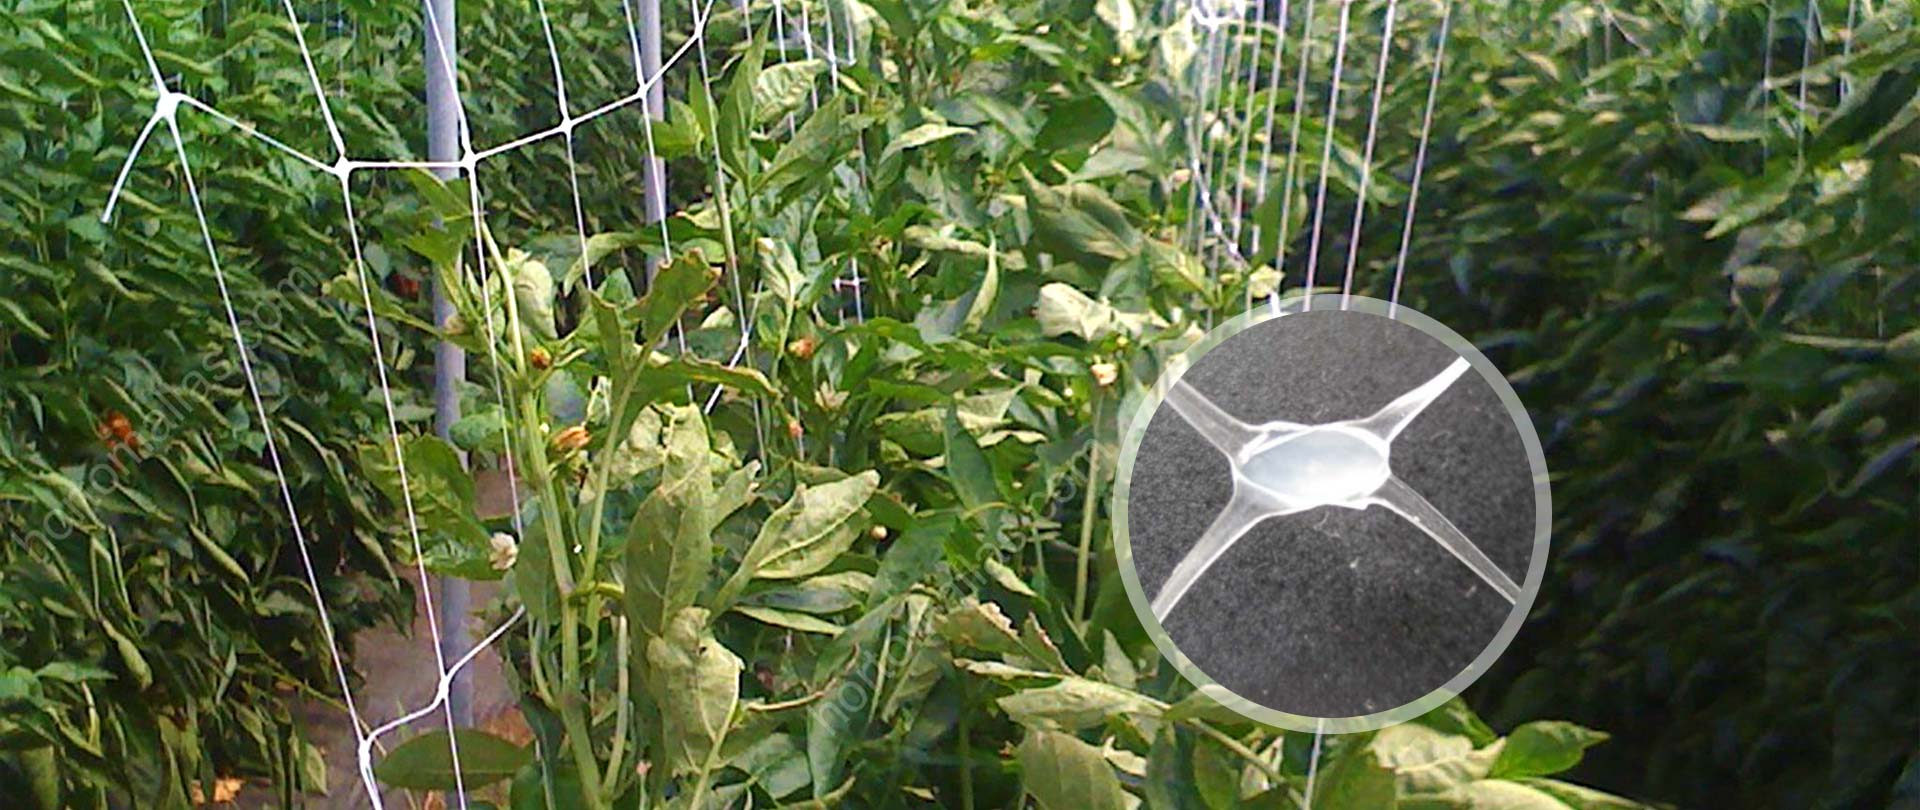 Trellis Netting/Plant Support Net